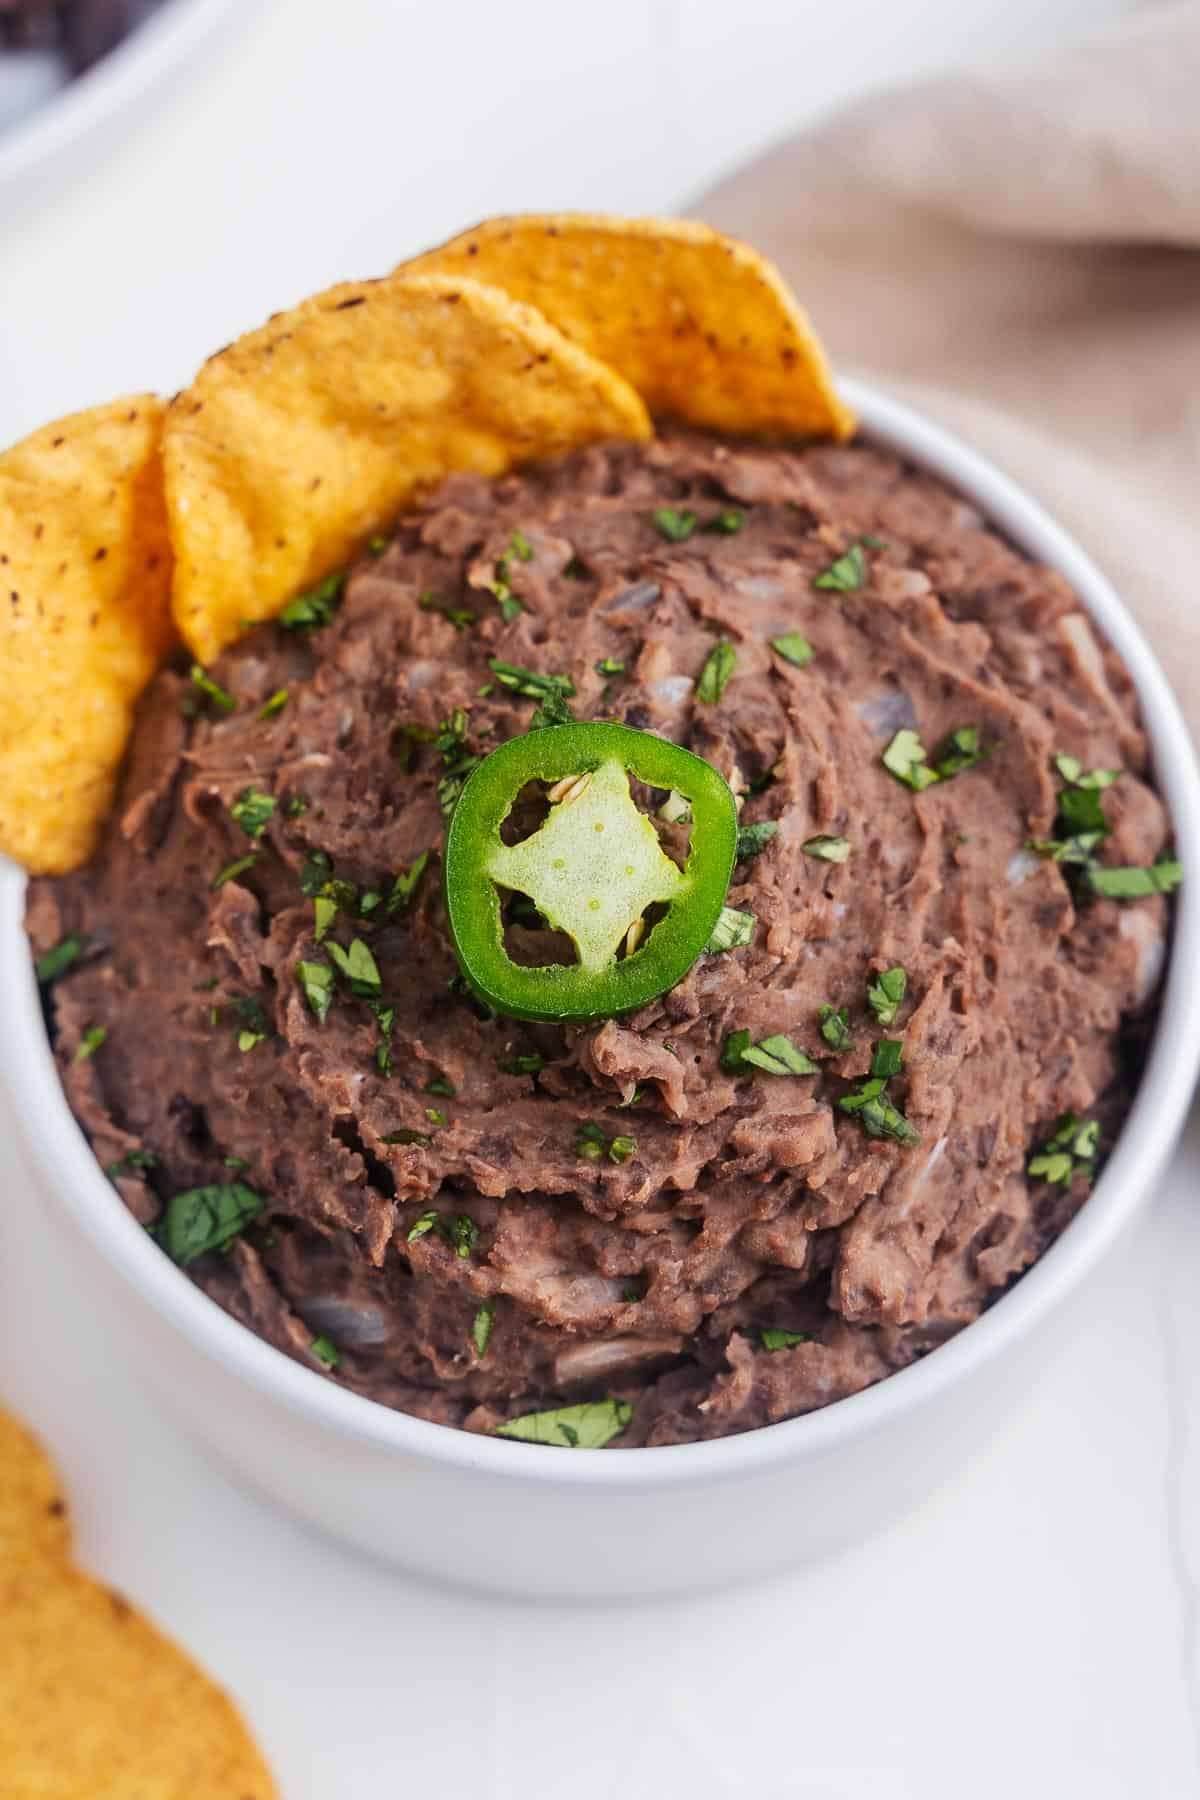 Refried Beans With Tortilla Chips in a Bowl